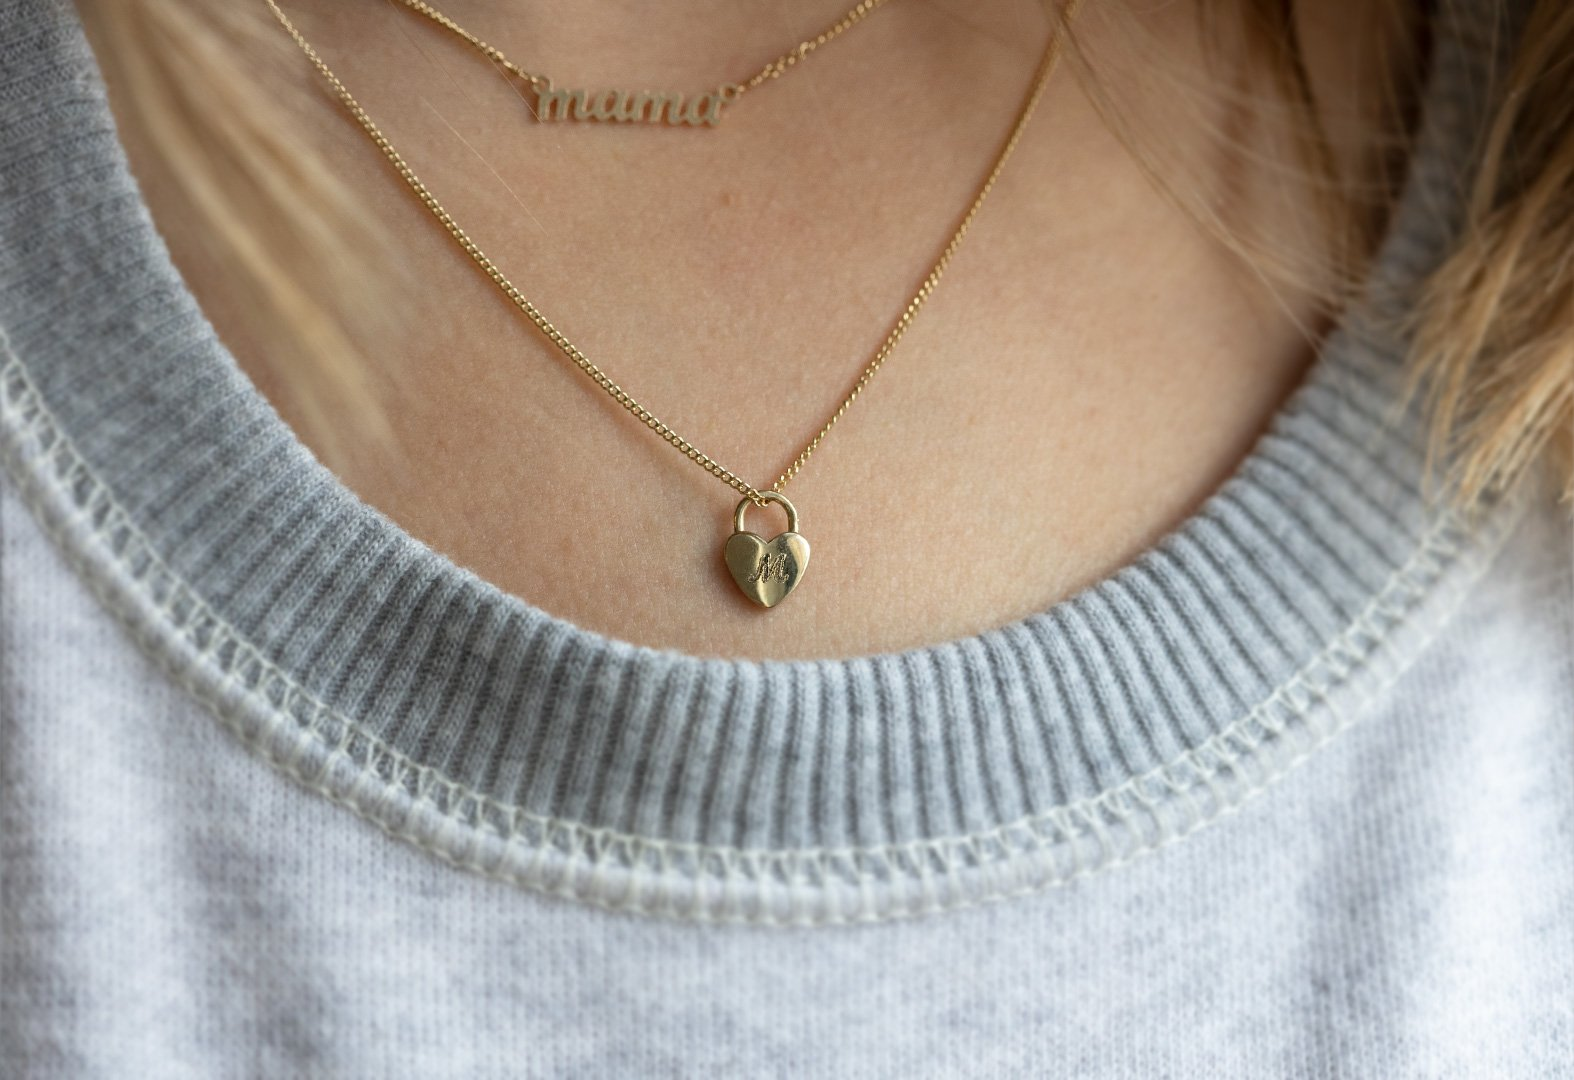 Personalized Heart Lock Necklace Layered With Our Mama Necklace